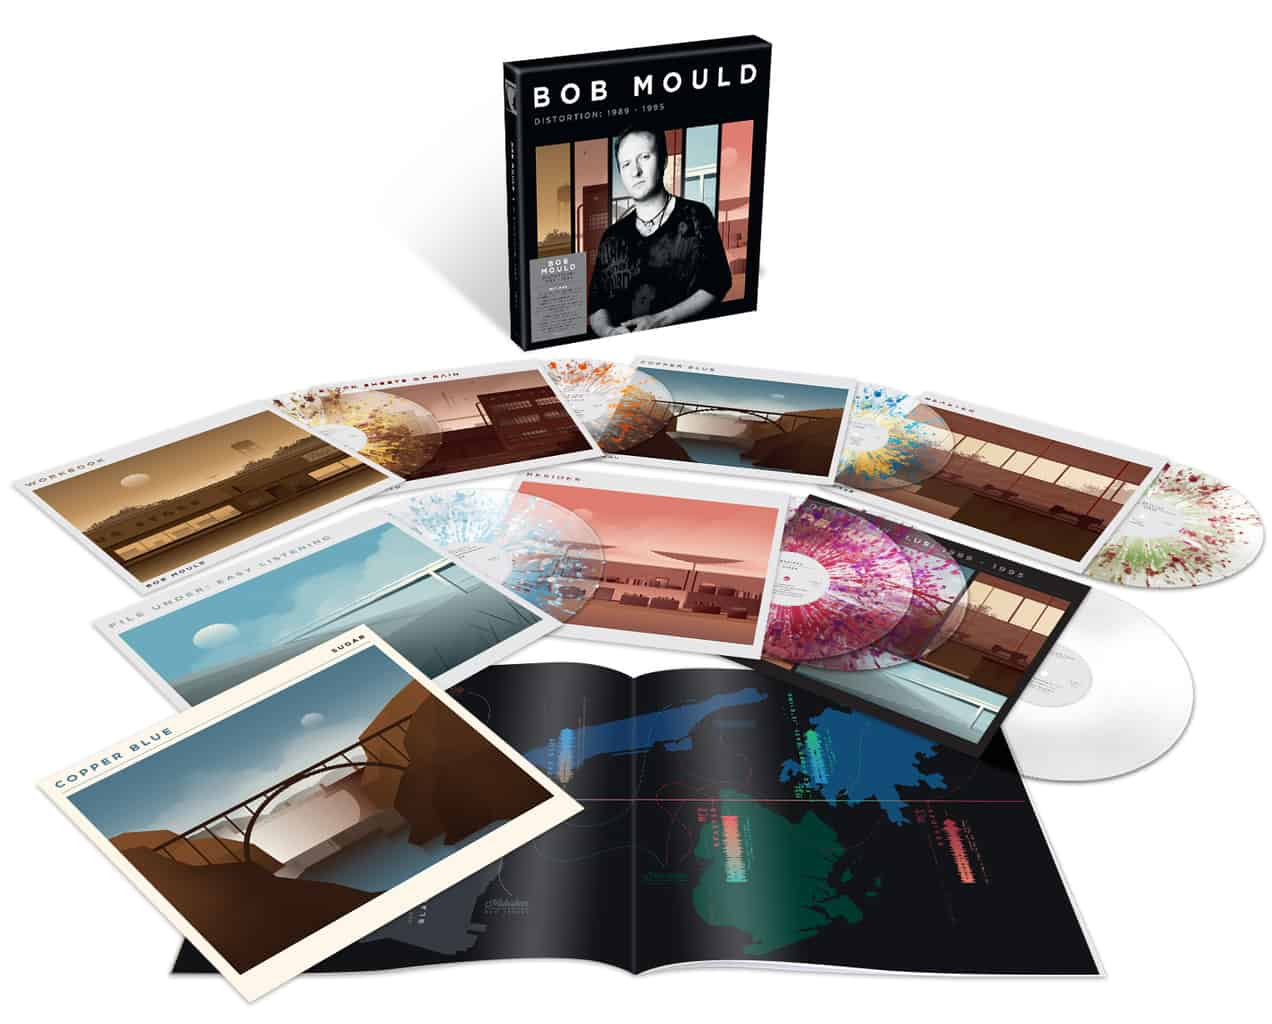 Bob Mould – Distortion: 1996-2007 9LP 140g Clear Splatter Vinyl Box Set + Signed Print